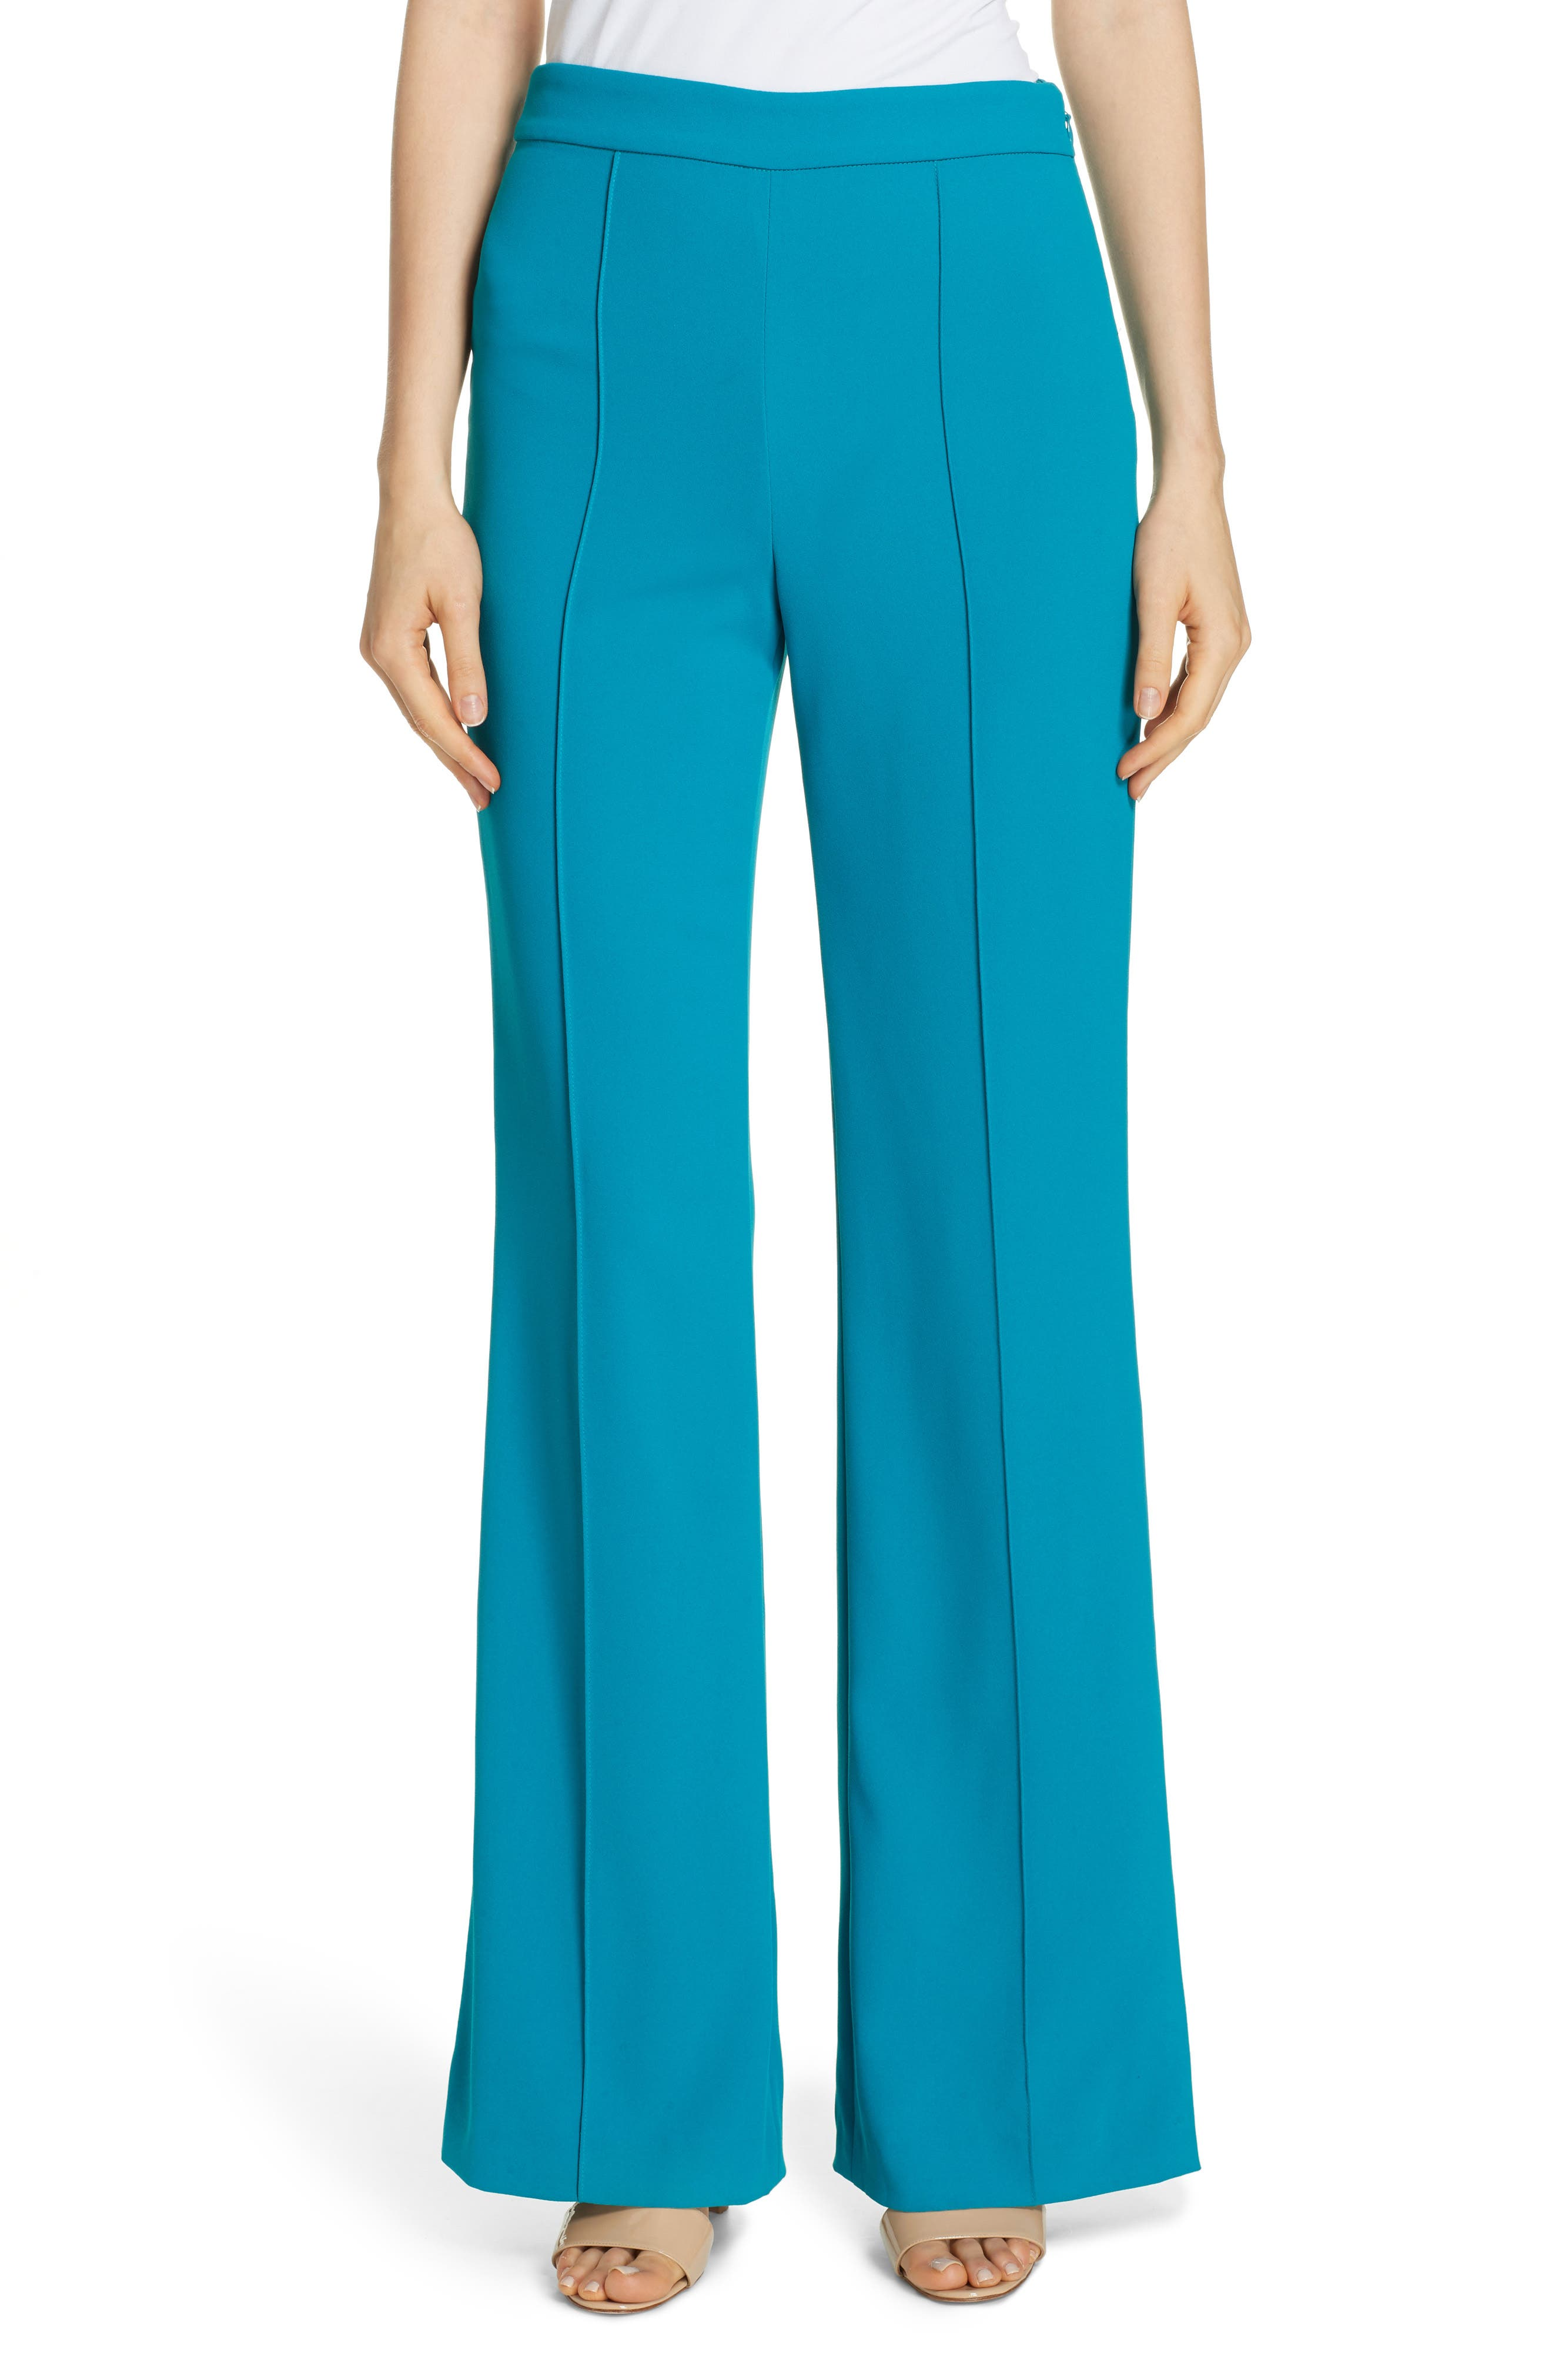 Alice + Olivia Jalisa High Waist Flare Pants, Blue/green